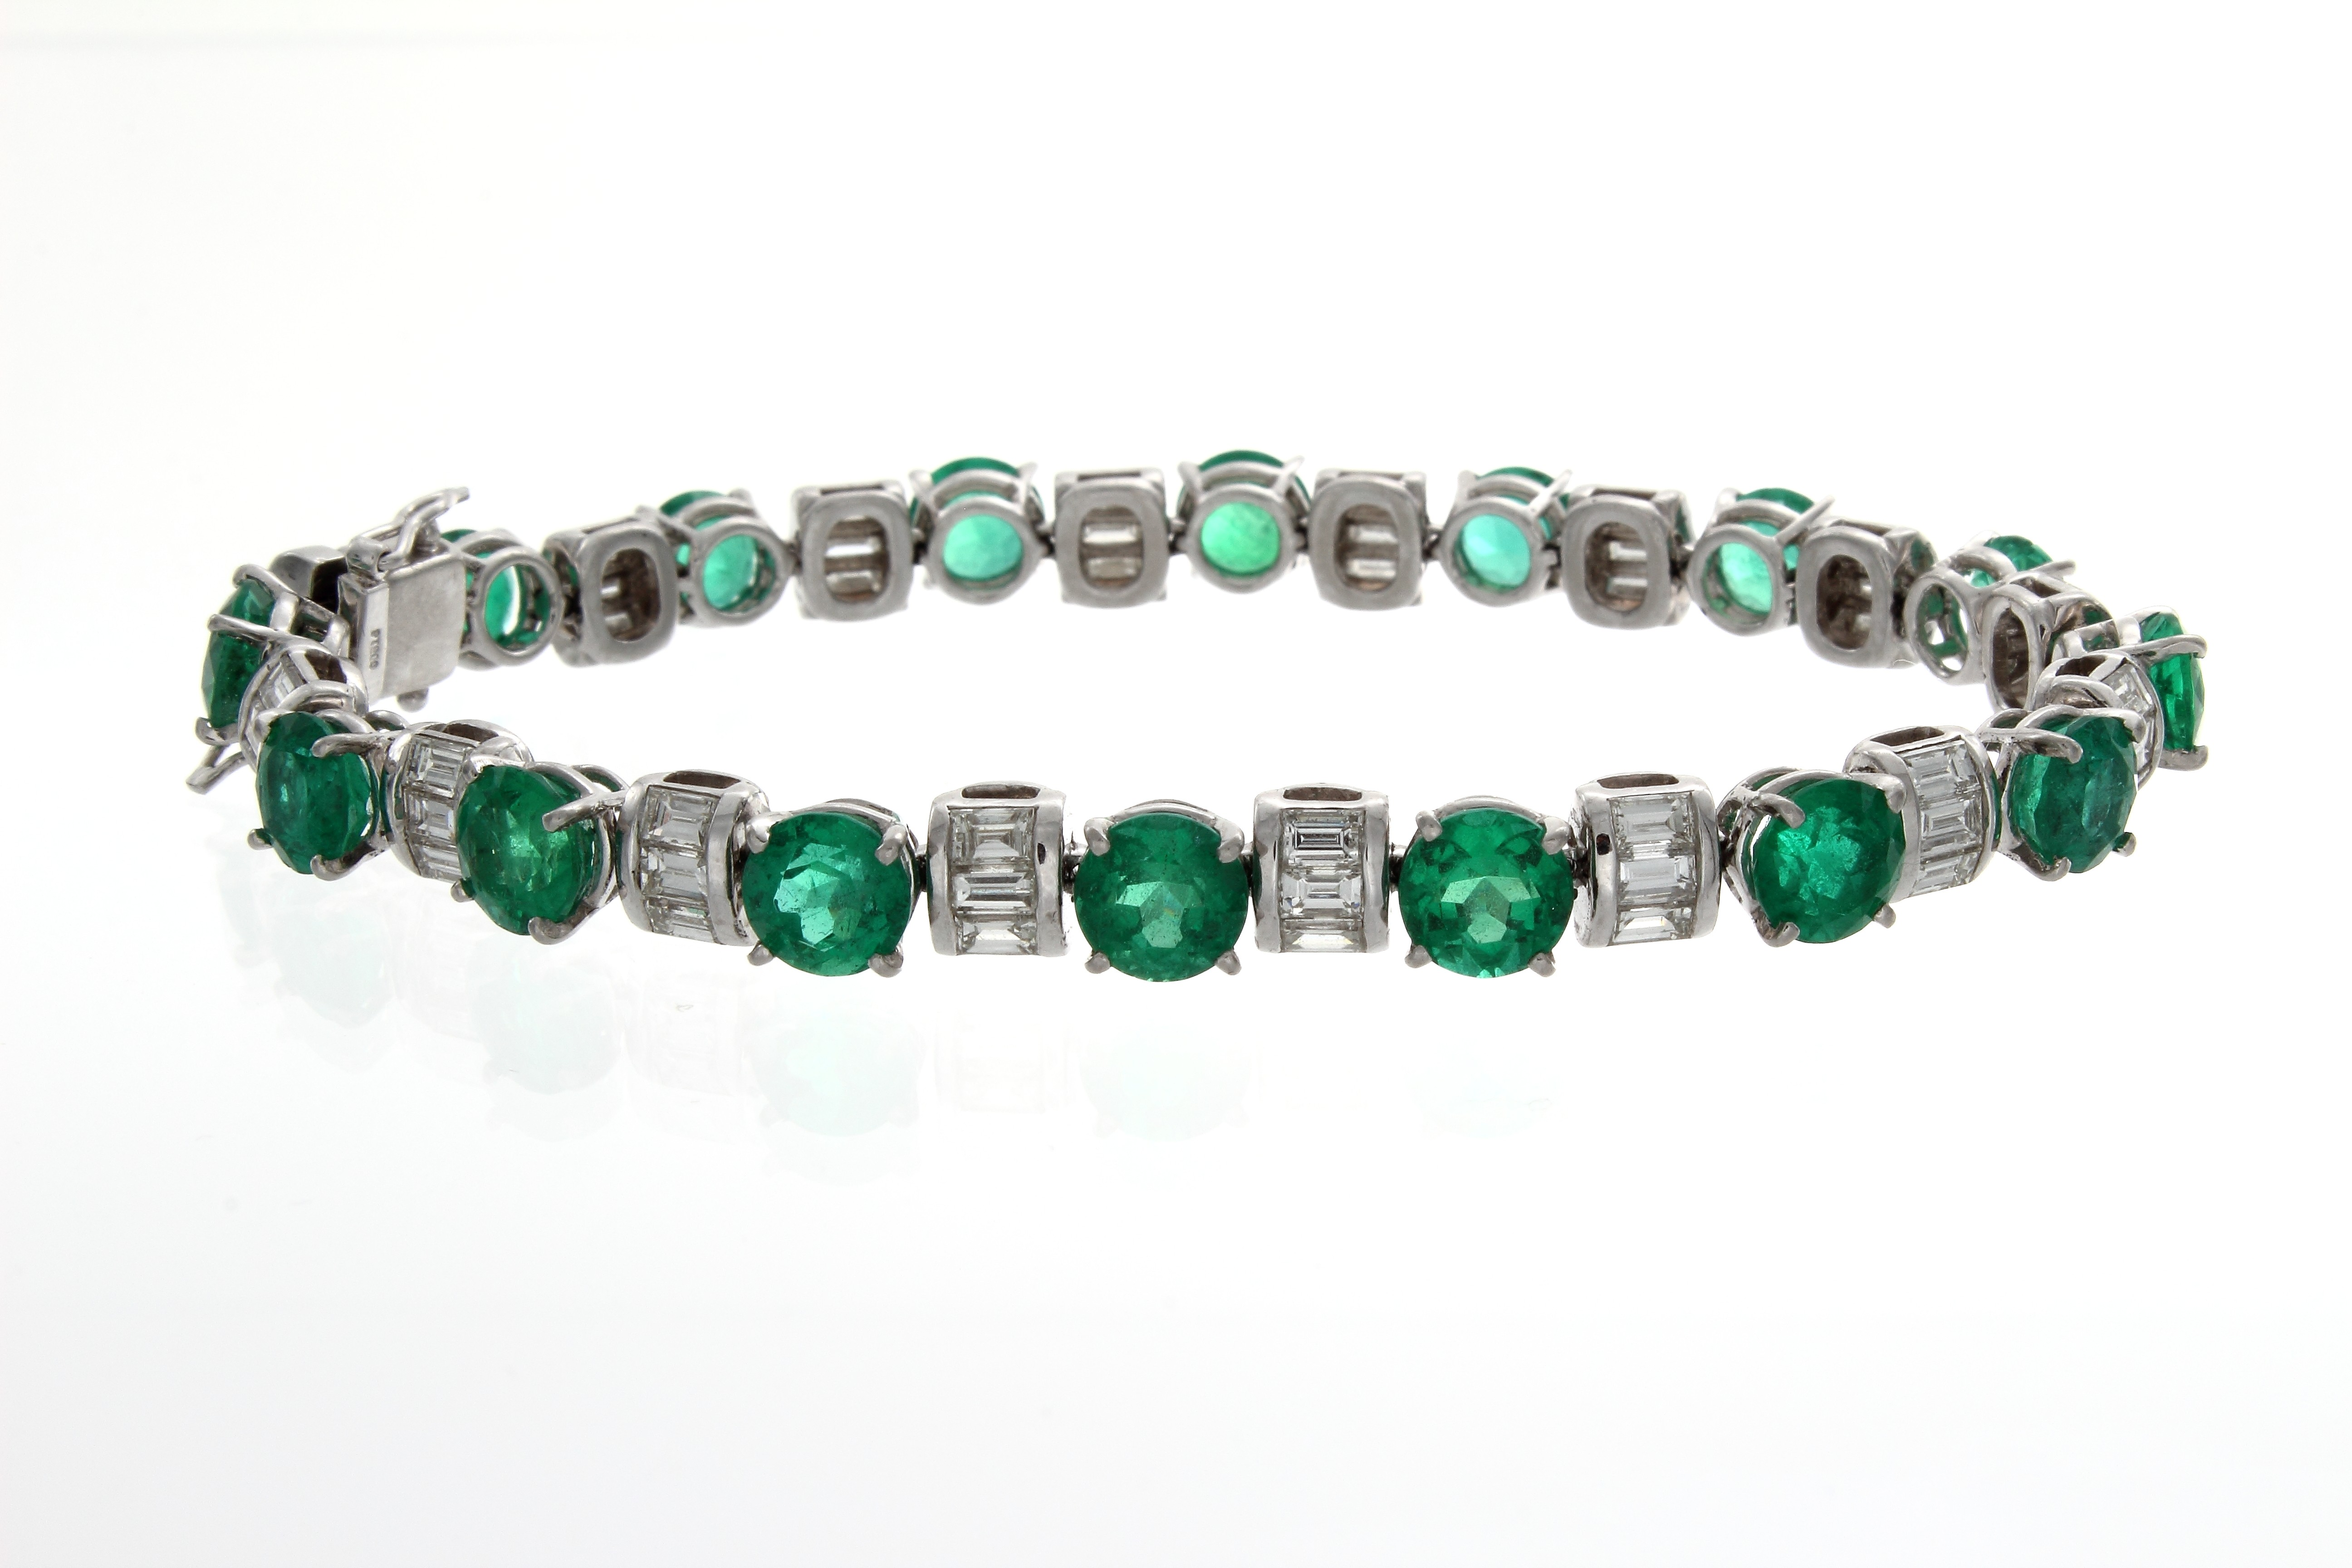 mona colombian jewelry diamond emerald bracelet bracelets lisa